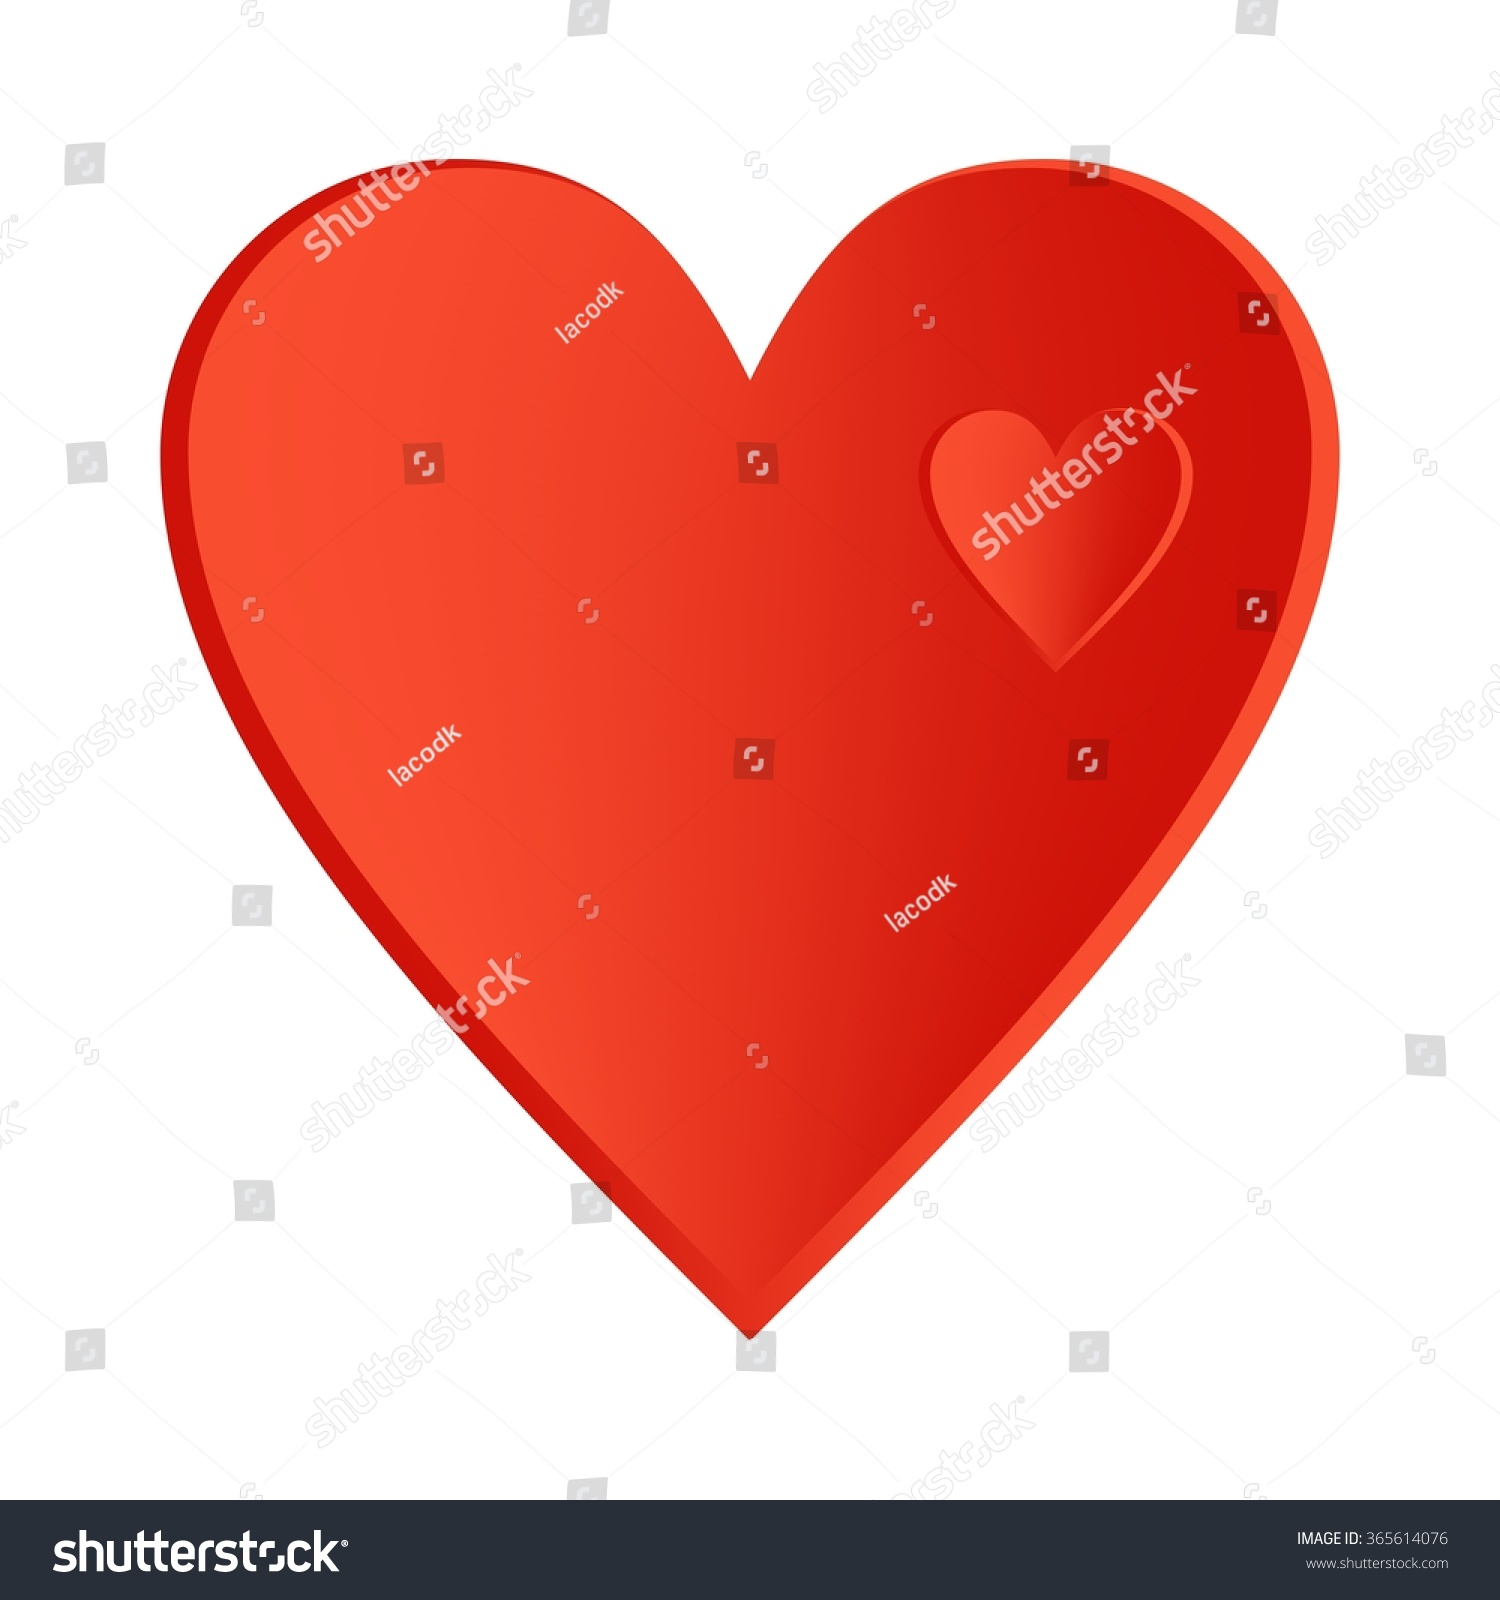 Big Red Heart Small Hearts Right Stock Vector Royalty Free